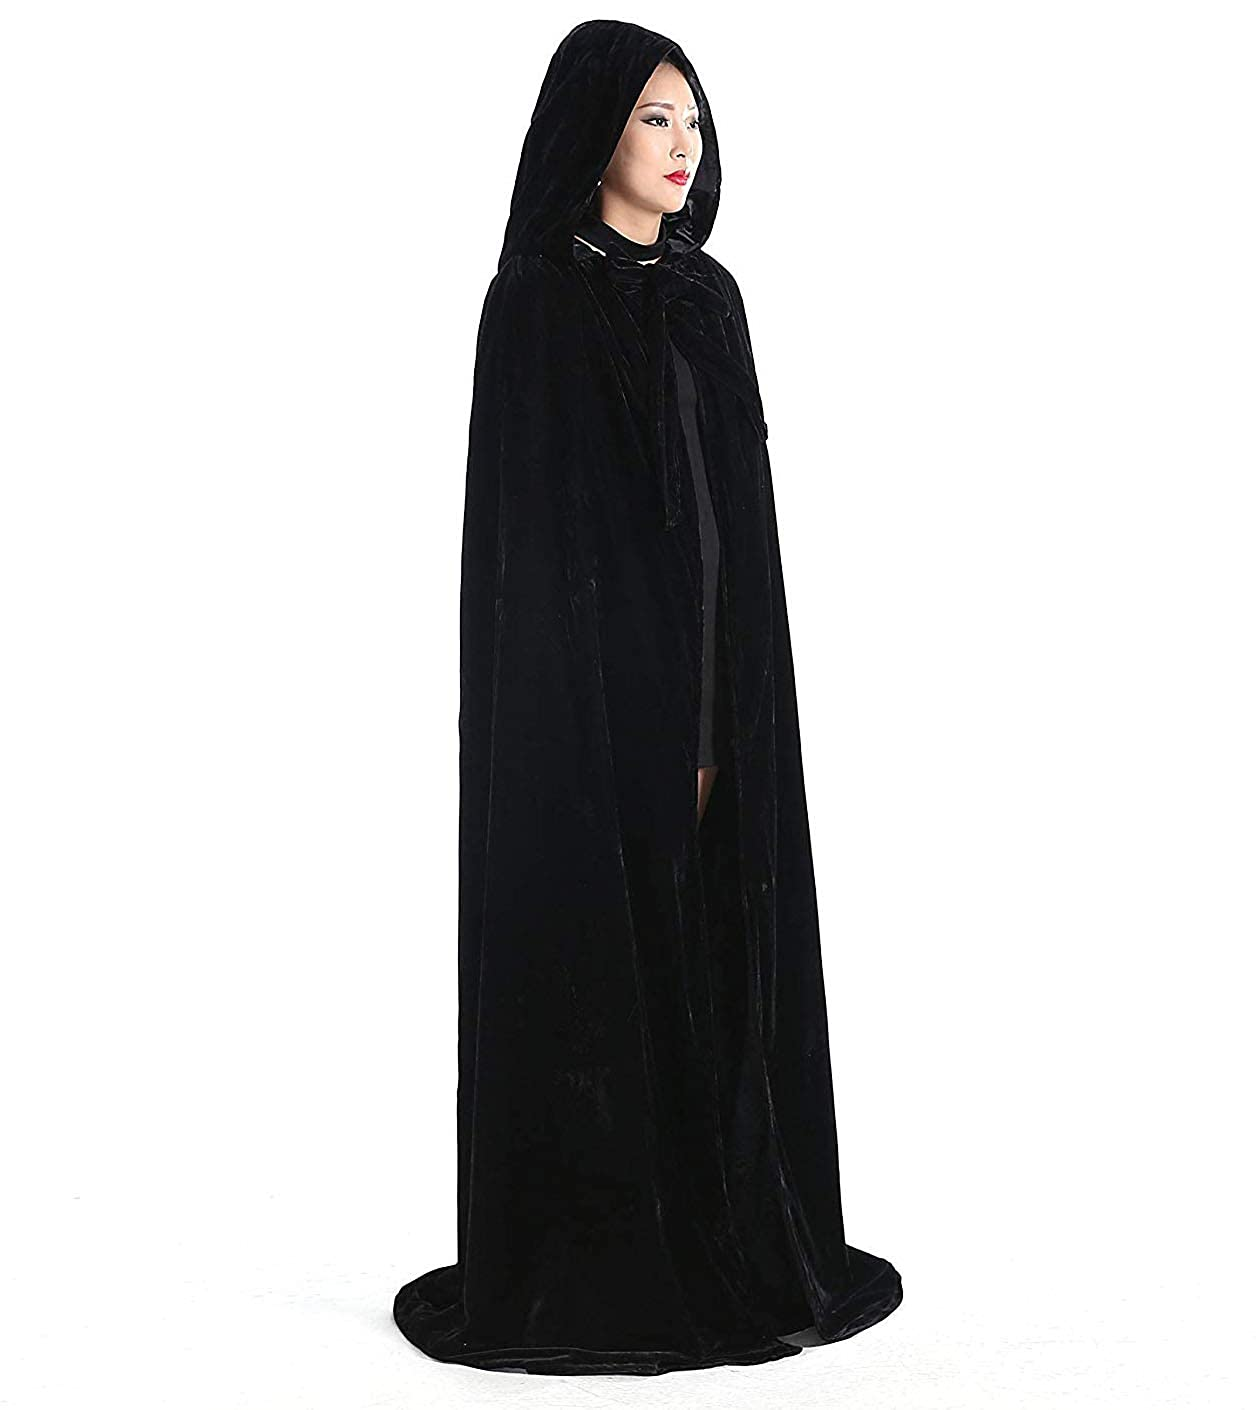 Engerla Bridal Halloween Costumes Hooded Cloak Velvet Cloak Black Cape Unisex Cosplay Capes